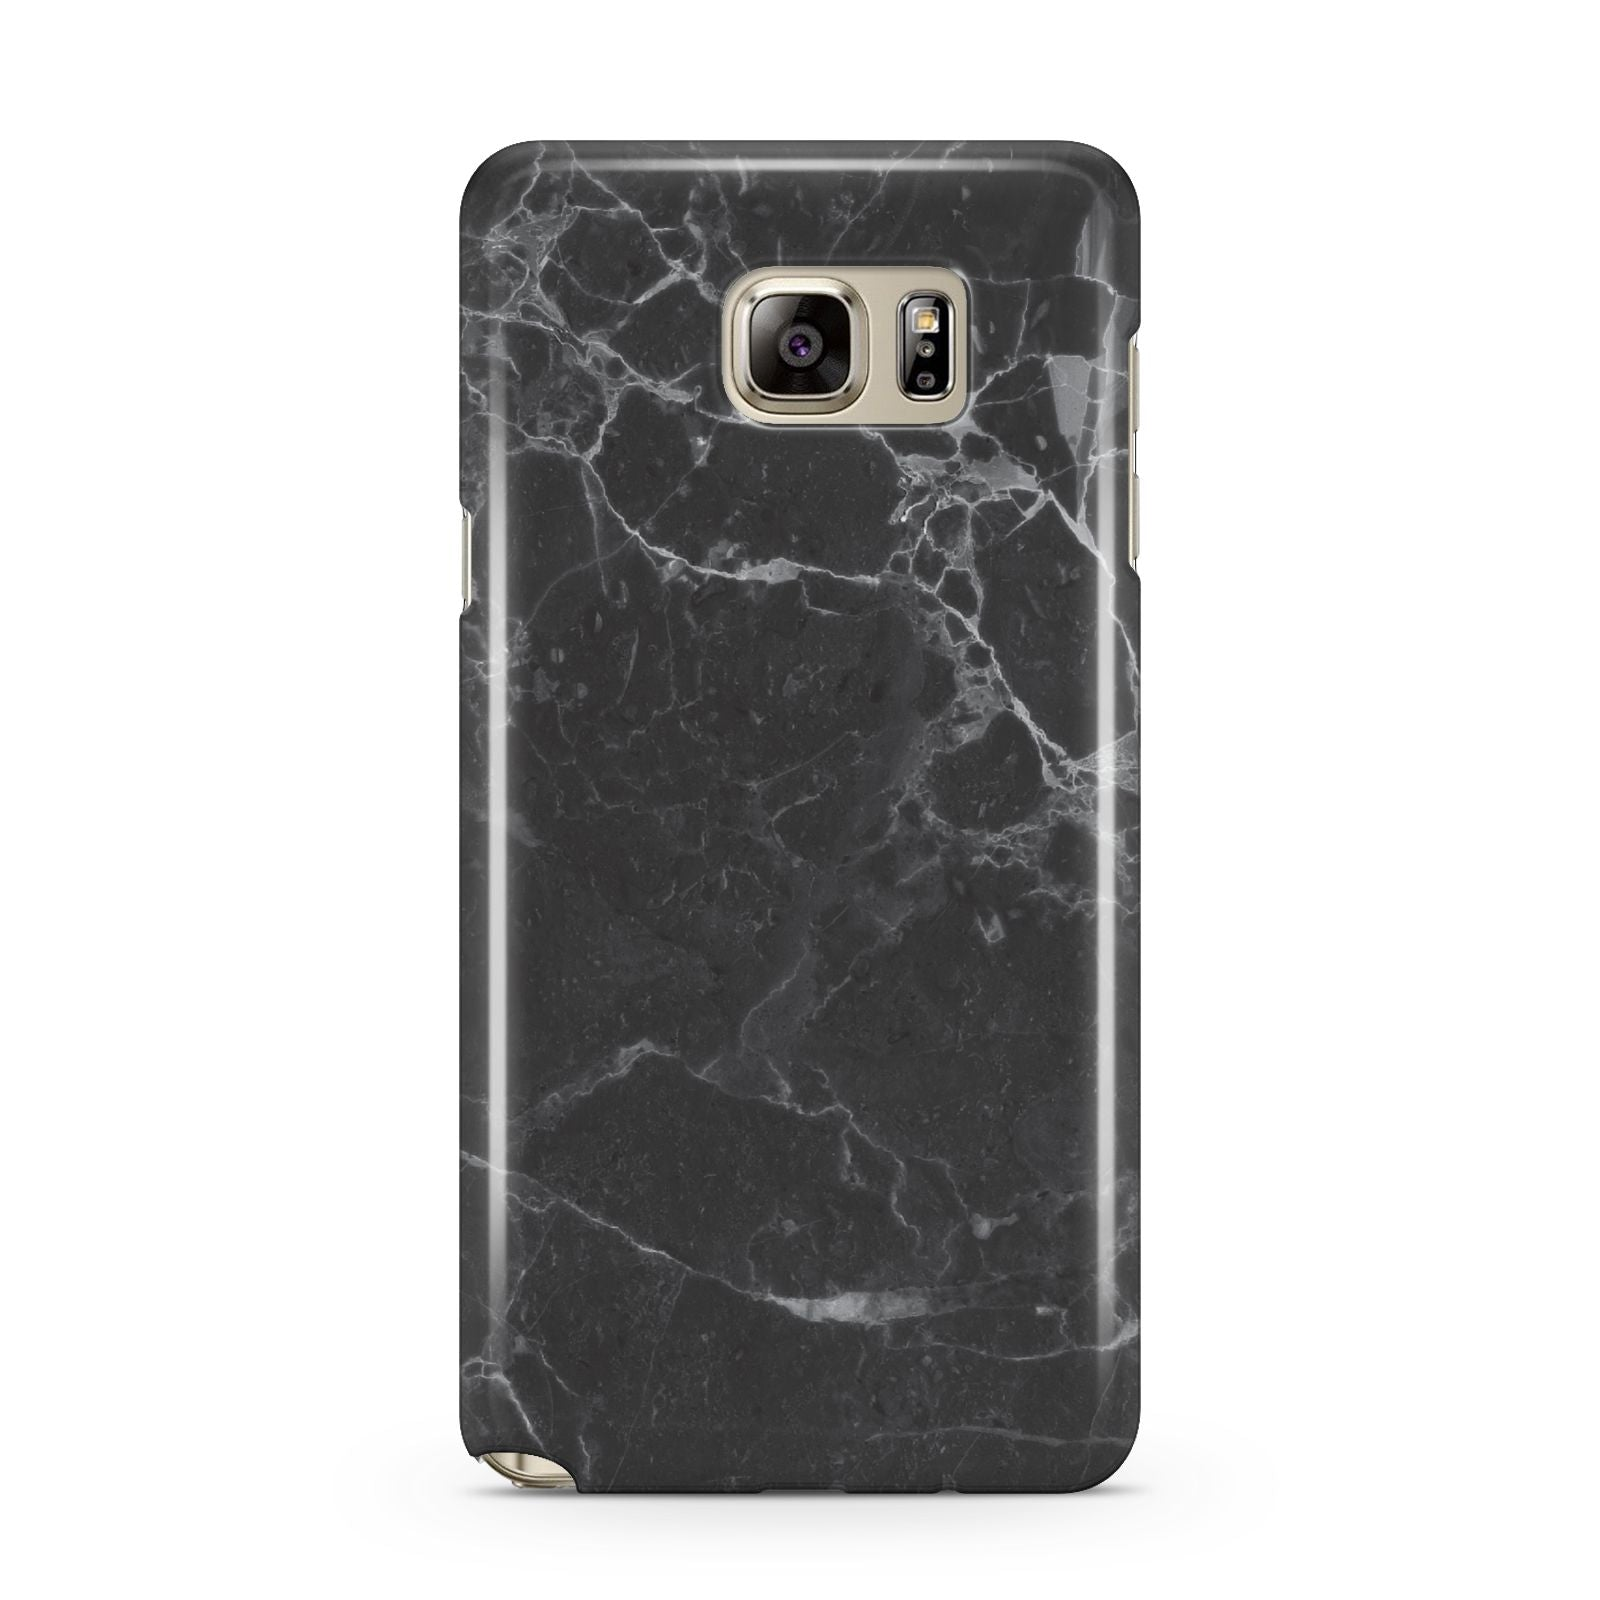 Faux Marble Effect Black Samsung Galaxy Note 5 Case